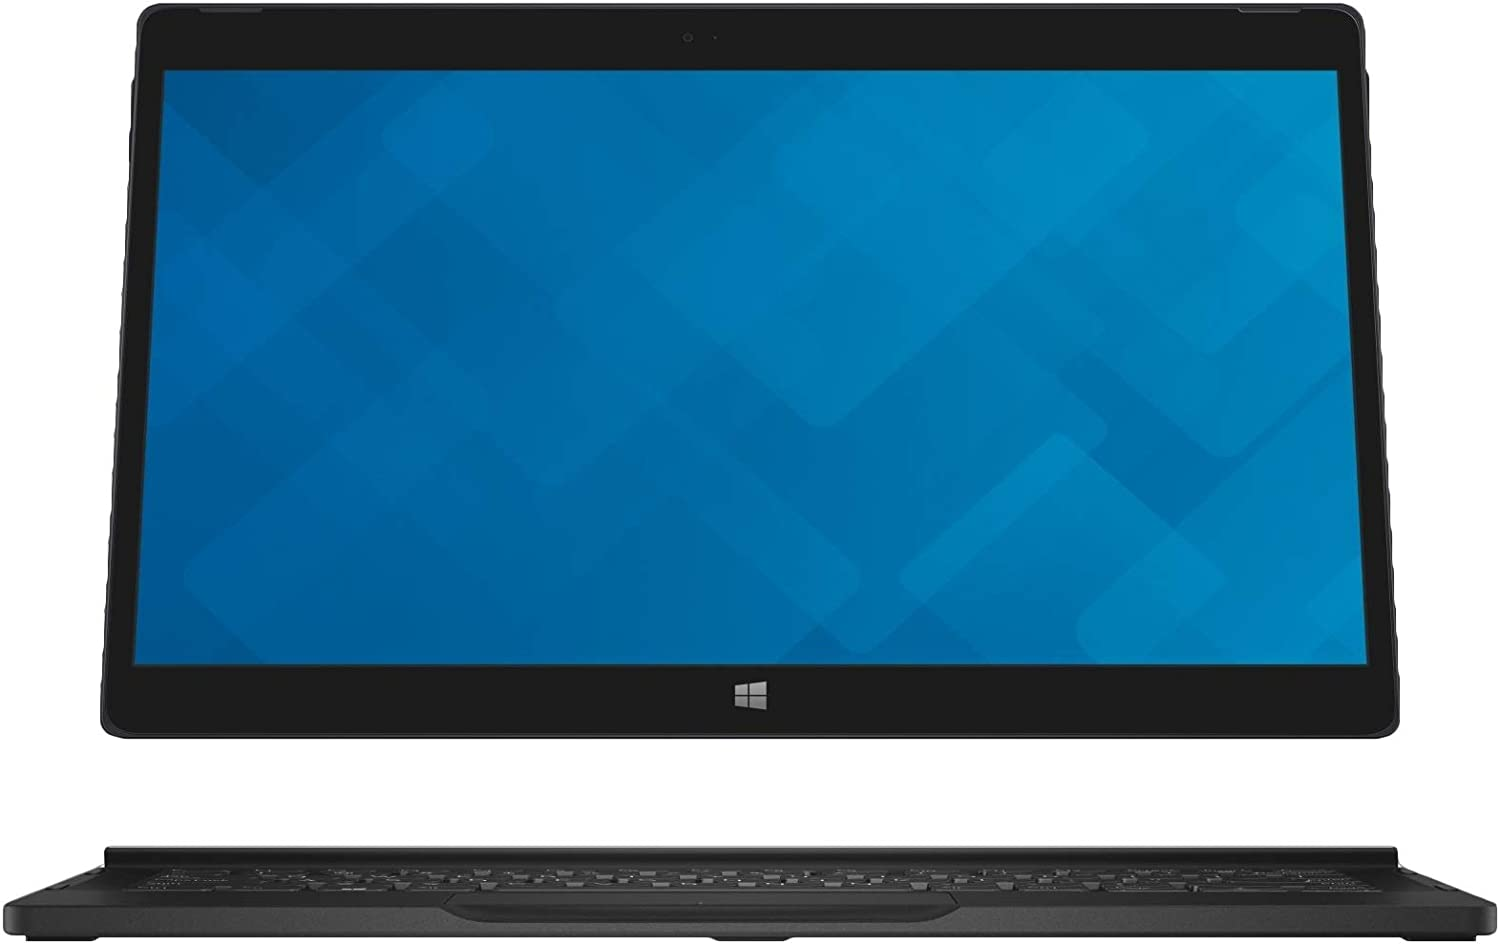 Dell Latitude 7275 Intel Core M5-6Y54 X2 1.1GHz 8GB 256GB SSD 12.5